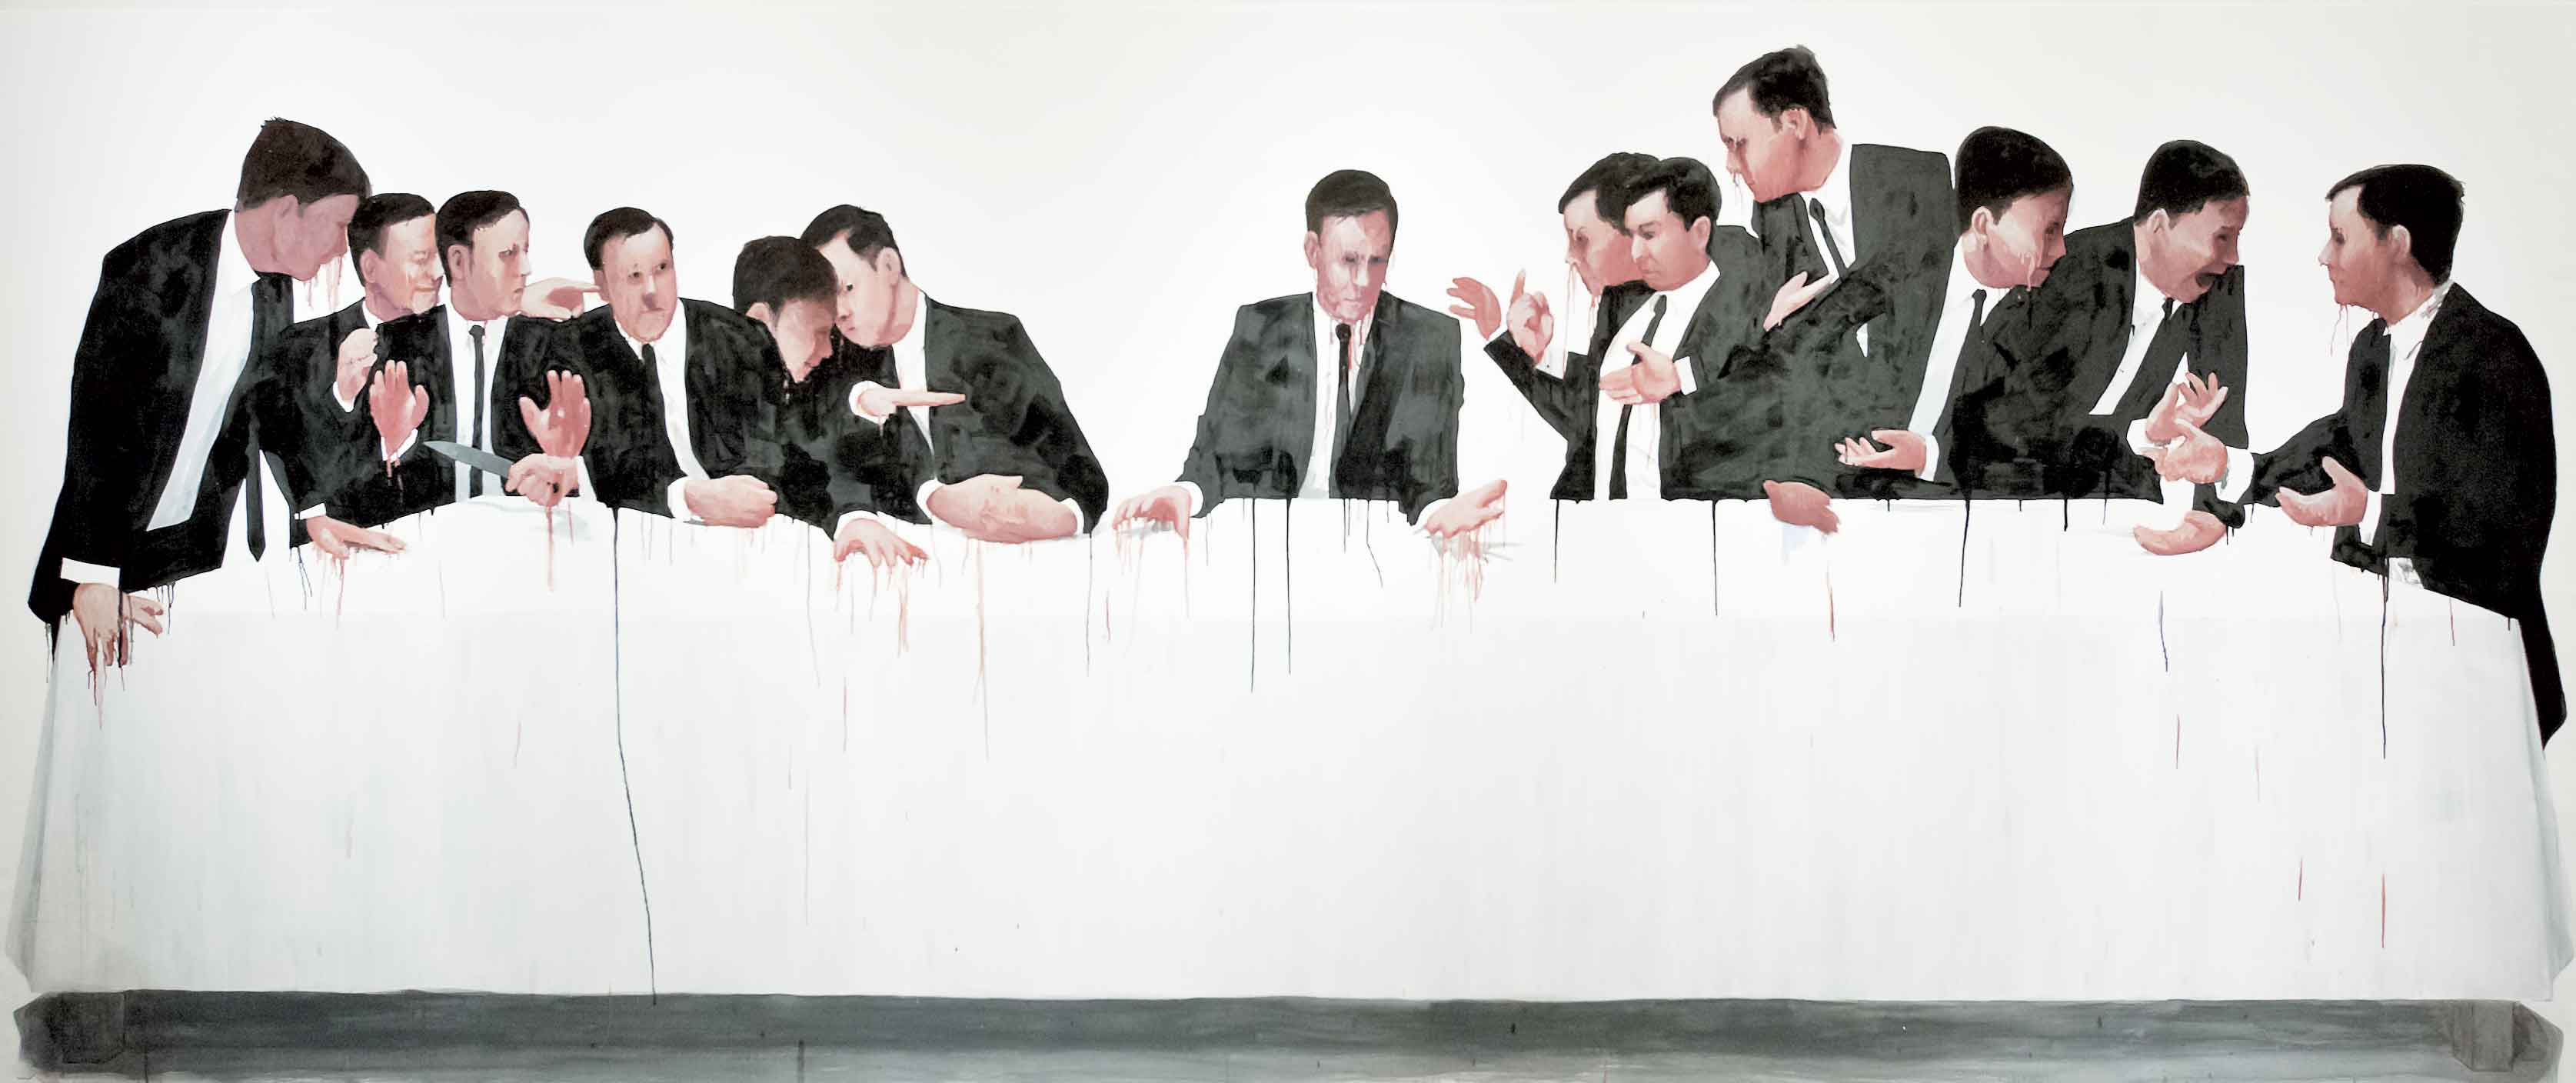 "Erik Sigerud, Post Mortem, 2009, oil and vinyl on canvas, 74.8"" x 177."" Courtesy of the artist."